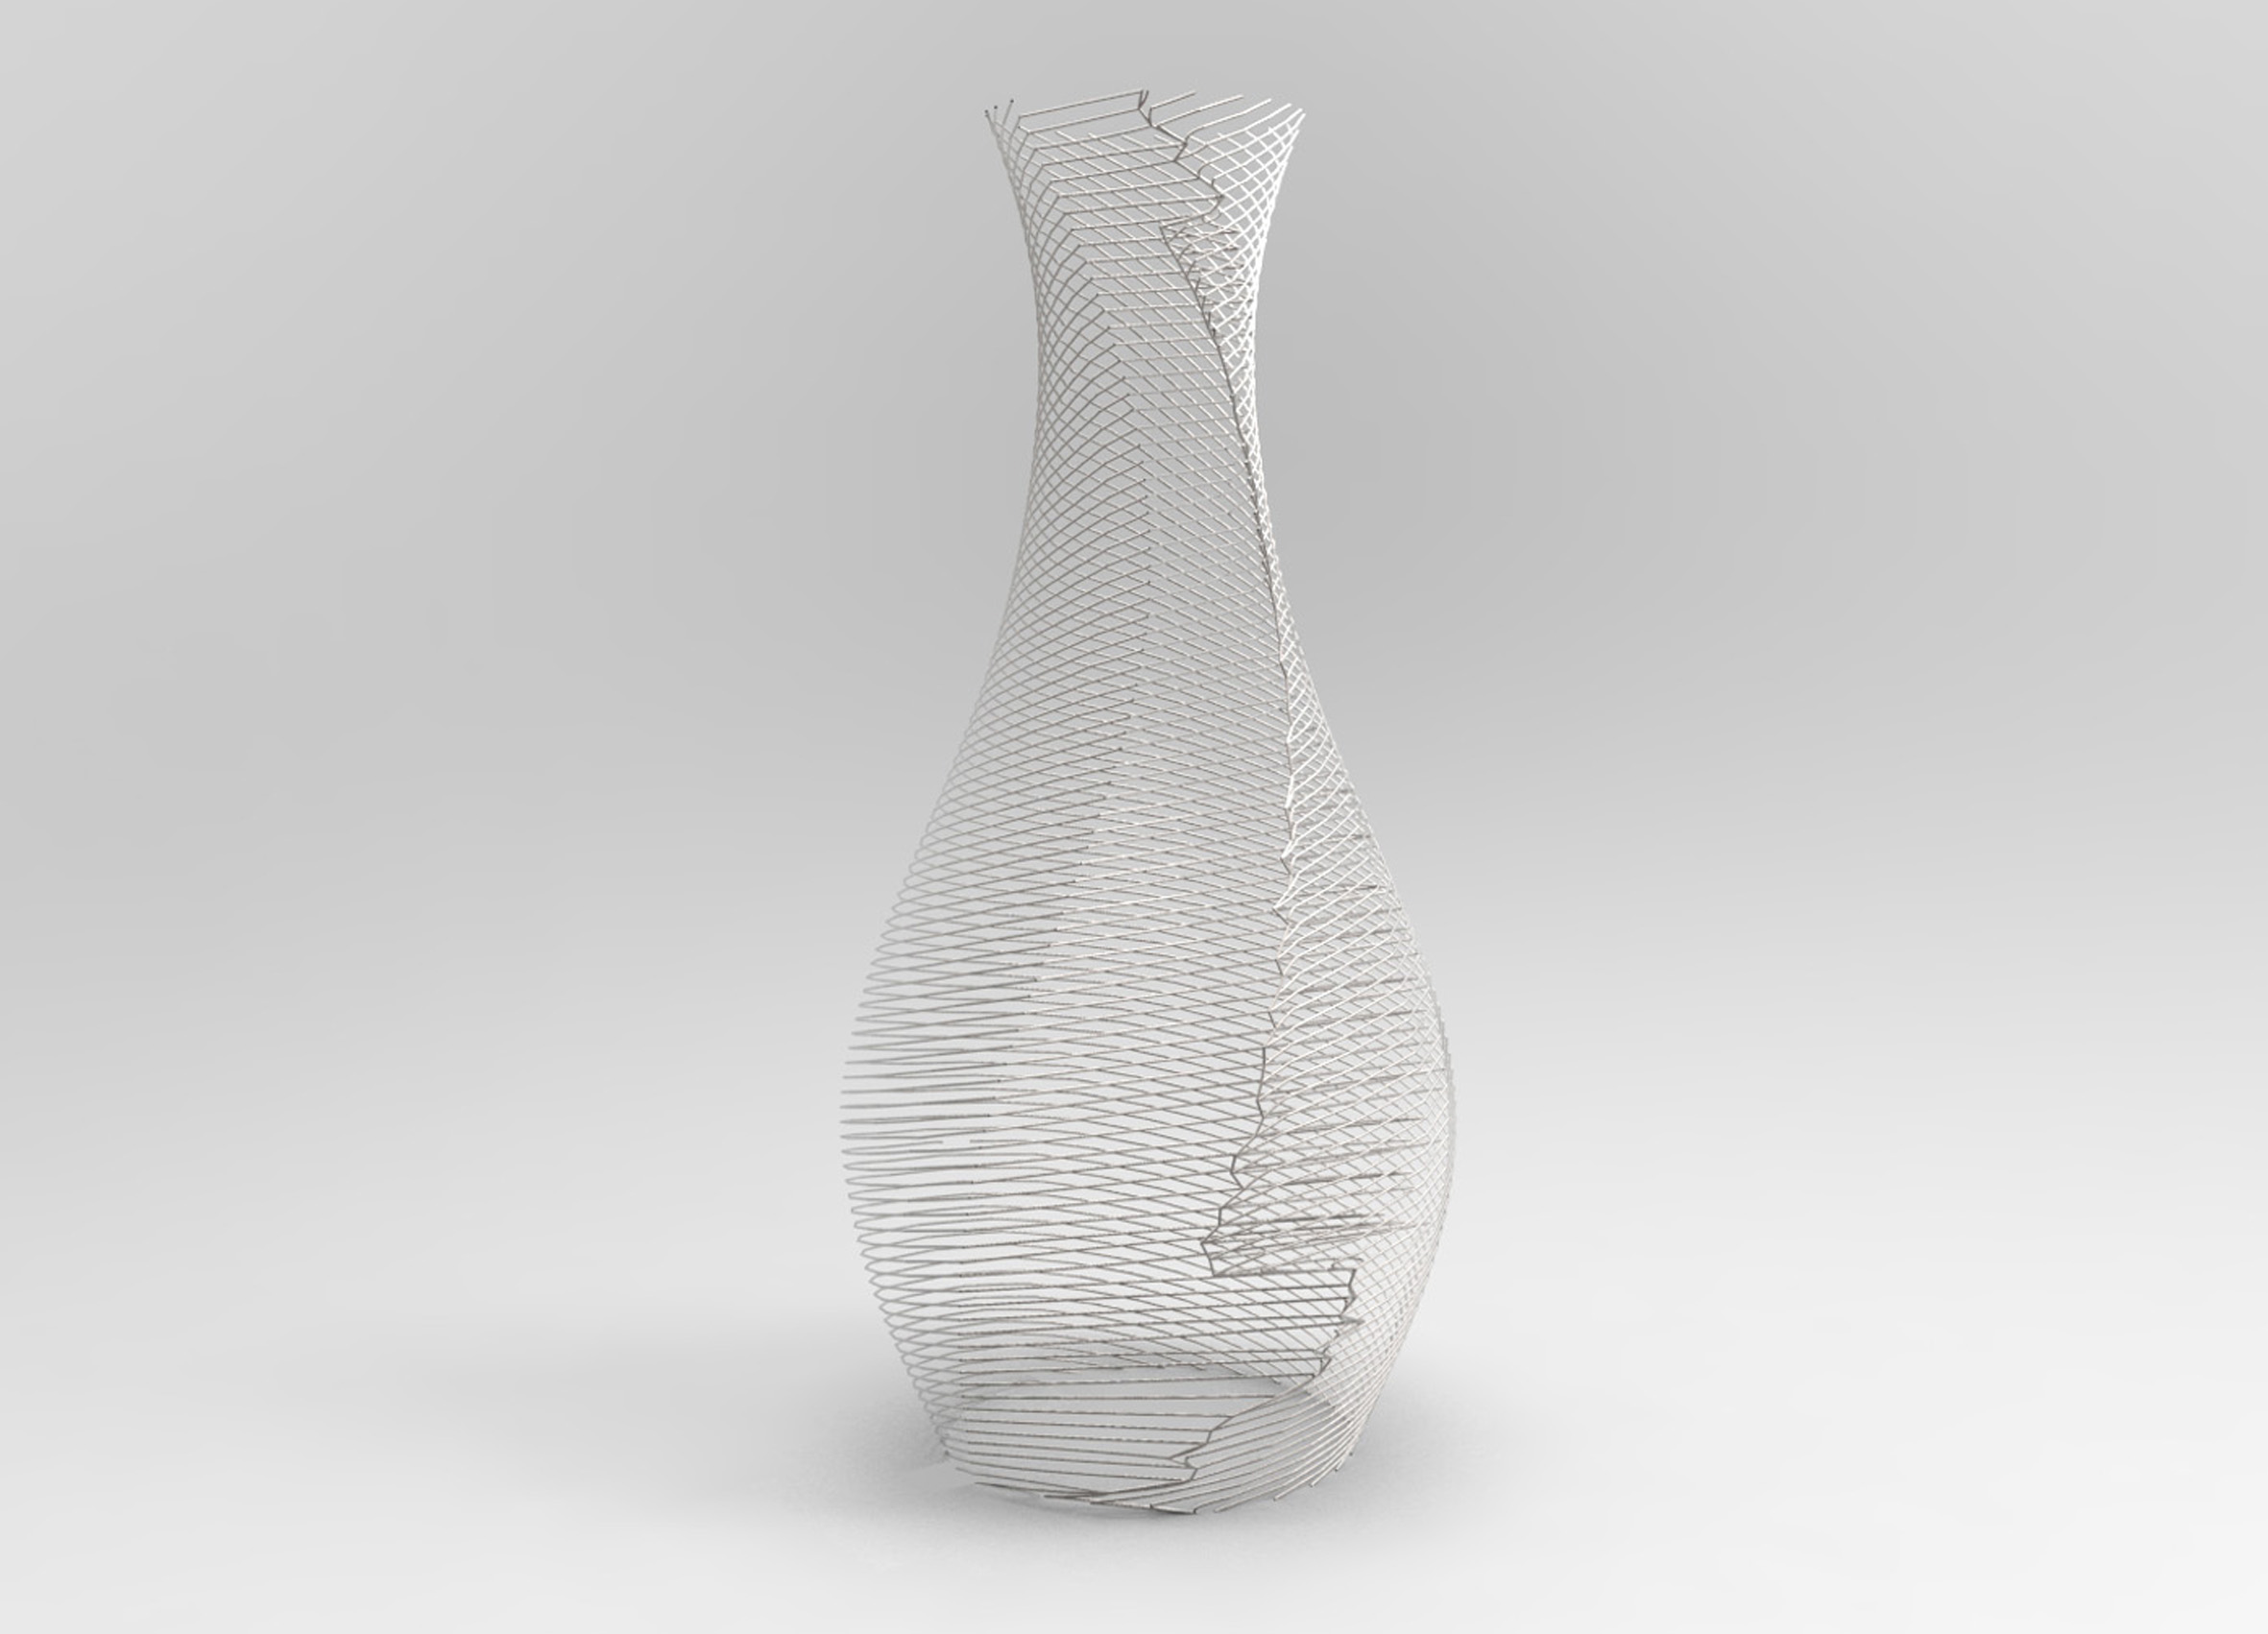 Product - Perforated vases, Berlin, Germany